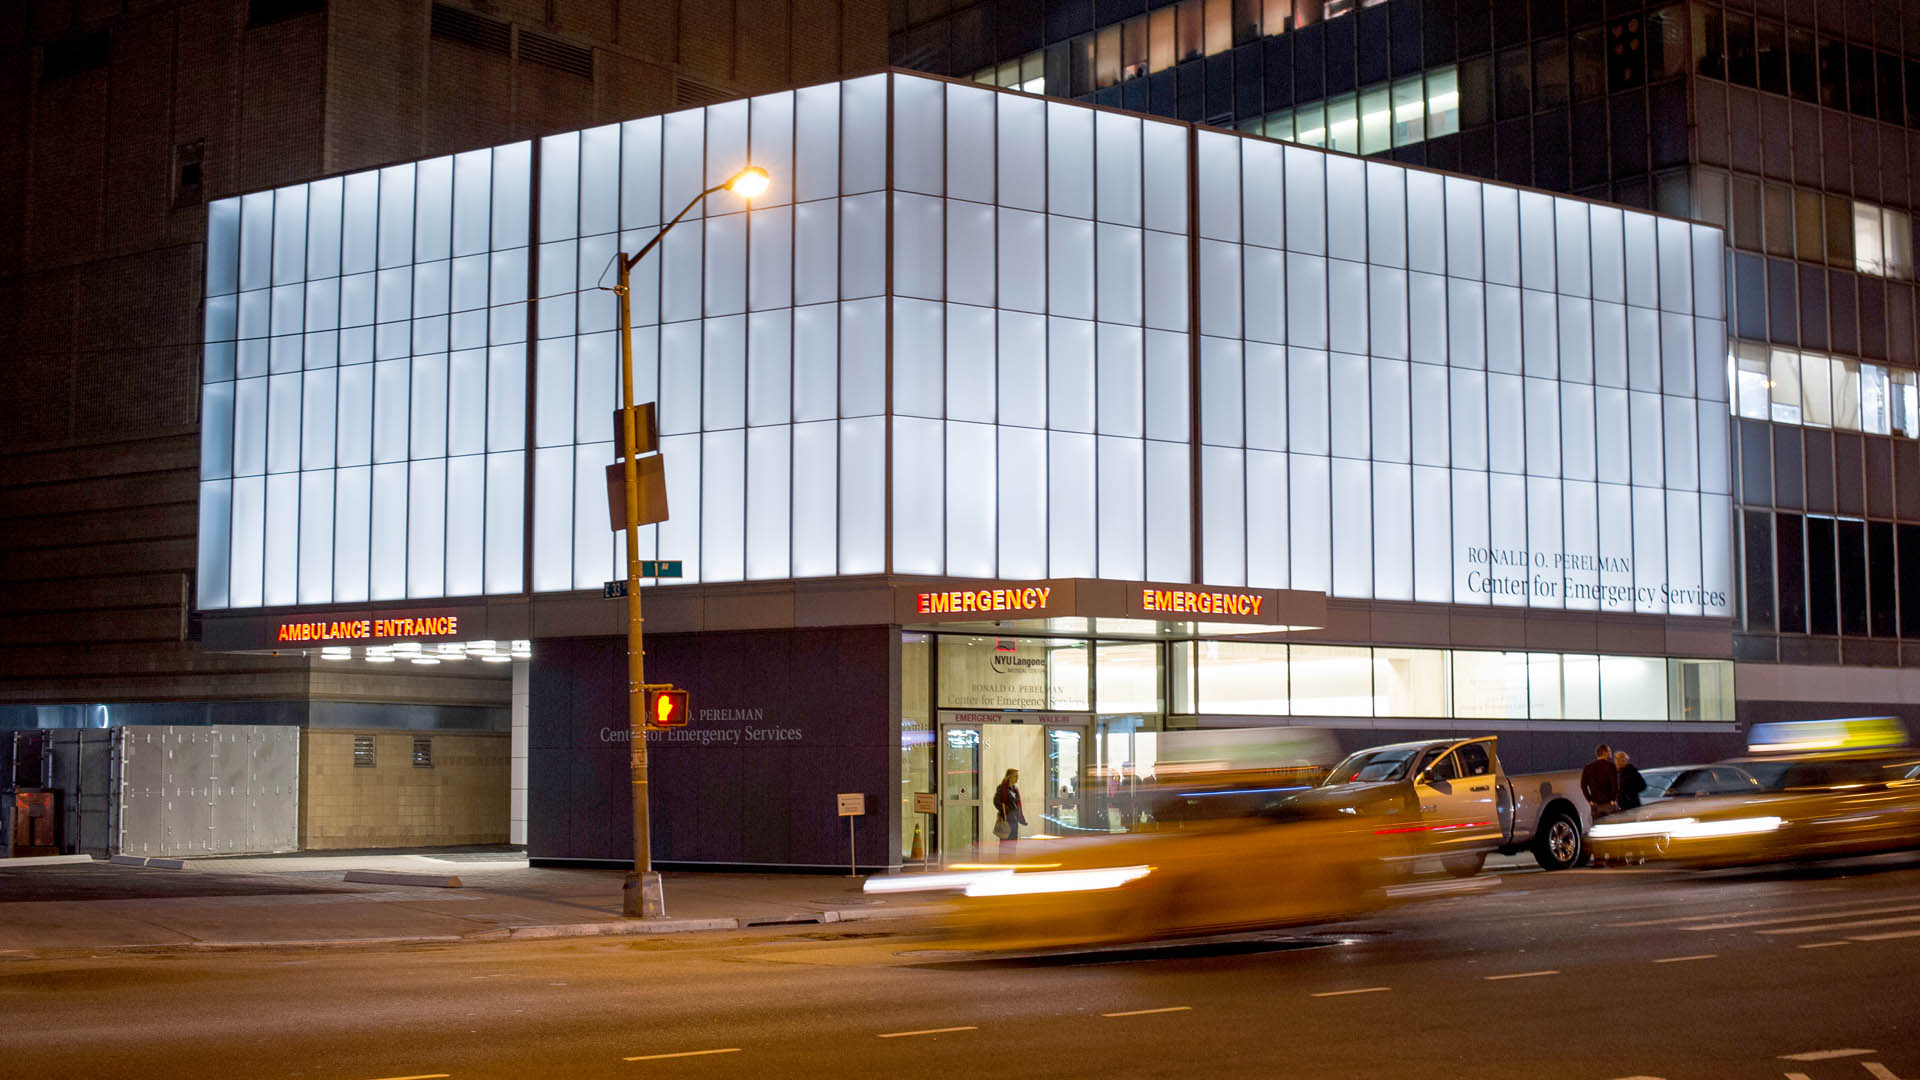 Ronald O. Perelman Center for Emergency Services | NYU Langone Health